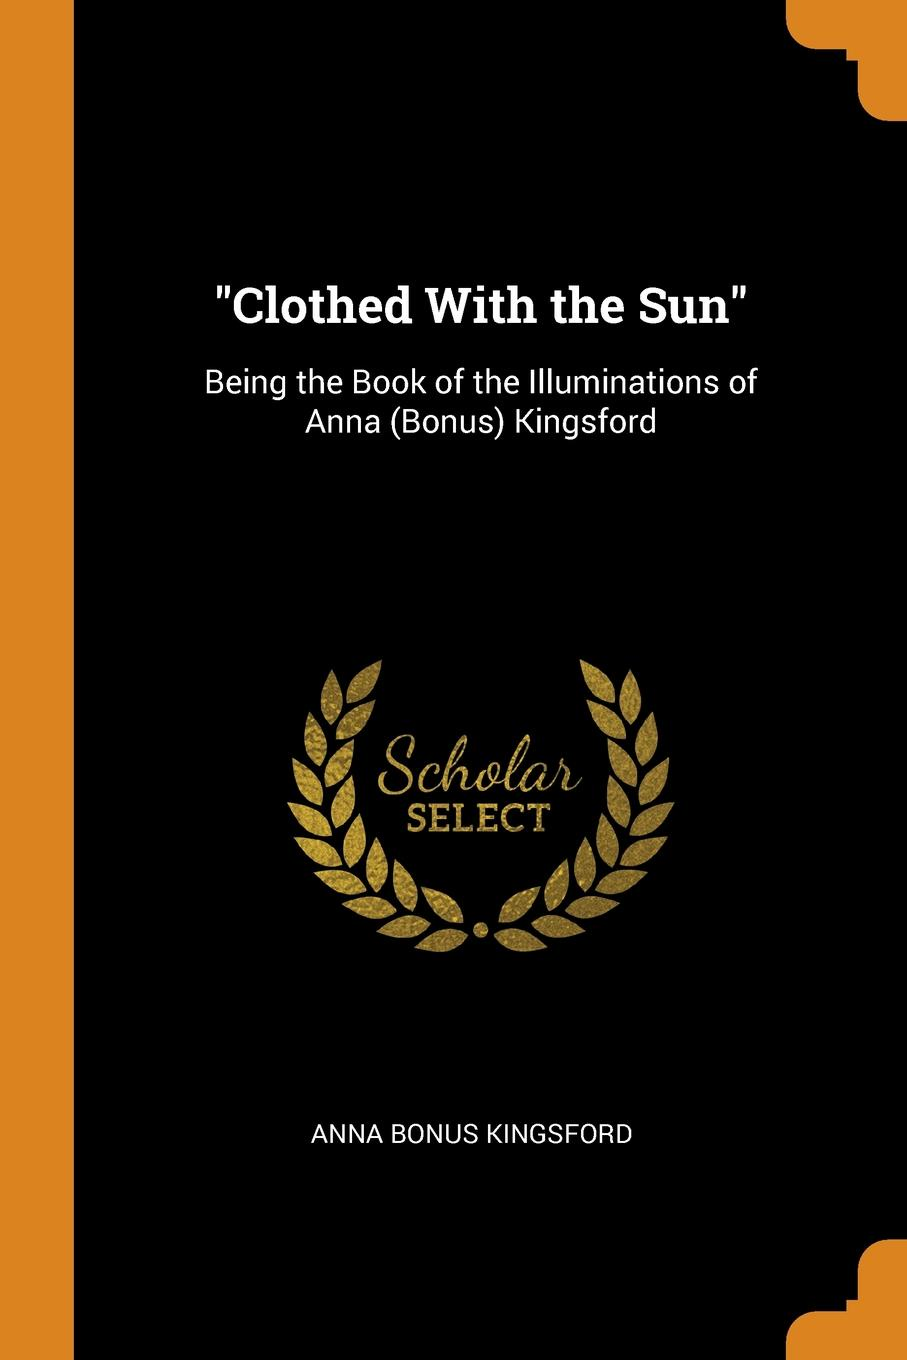 """Anna Bonus Kingsford. """"Clothed With the Sun"""". Being the Book of the Illuminations of Anna (Bonus) Kingsford"""